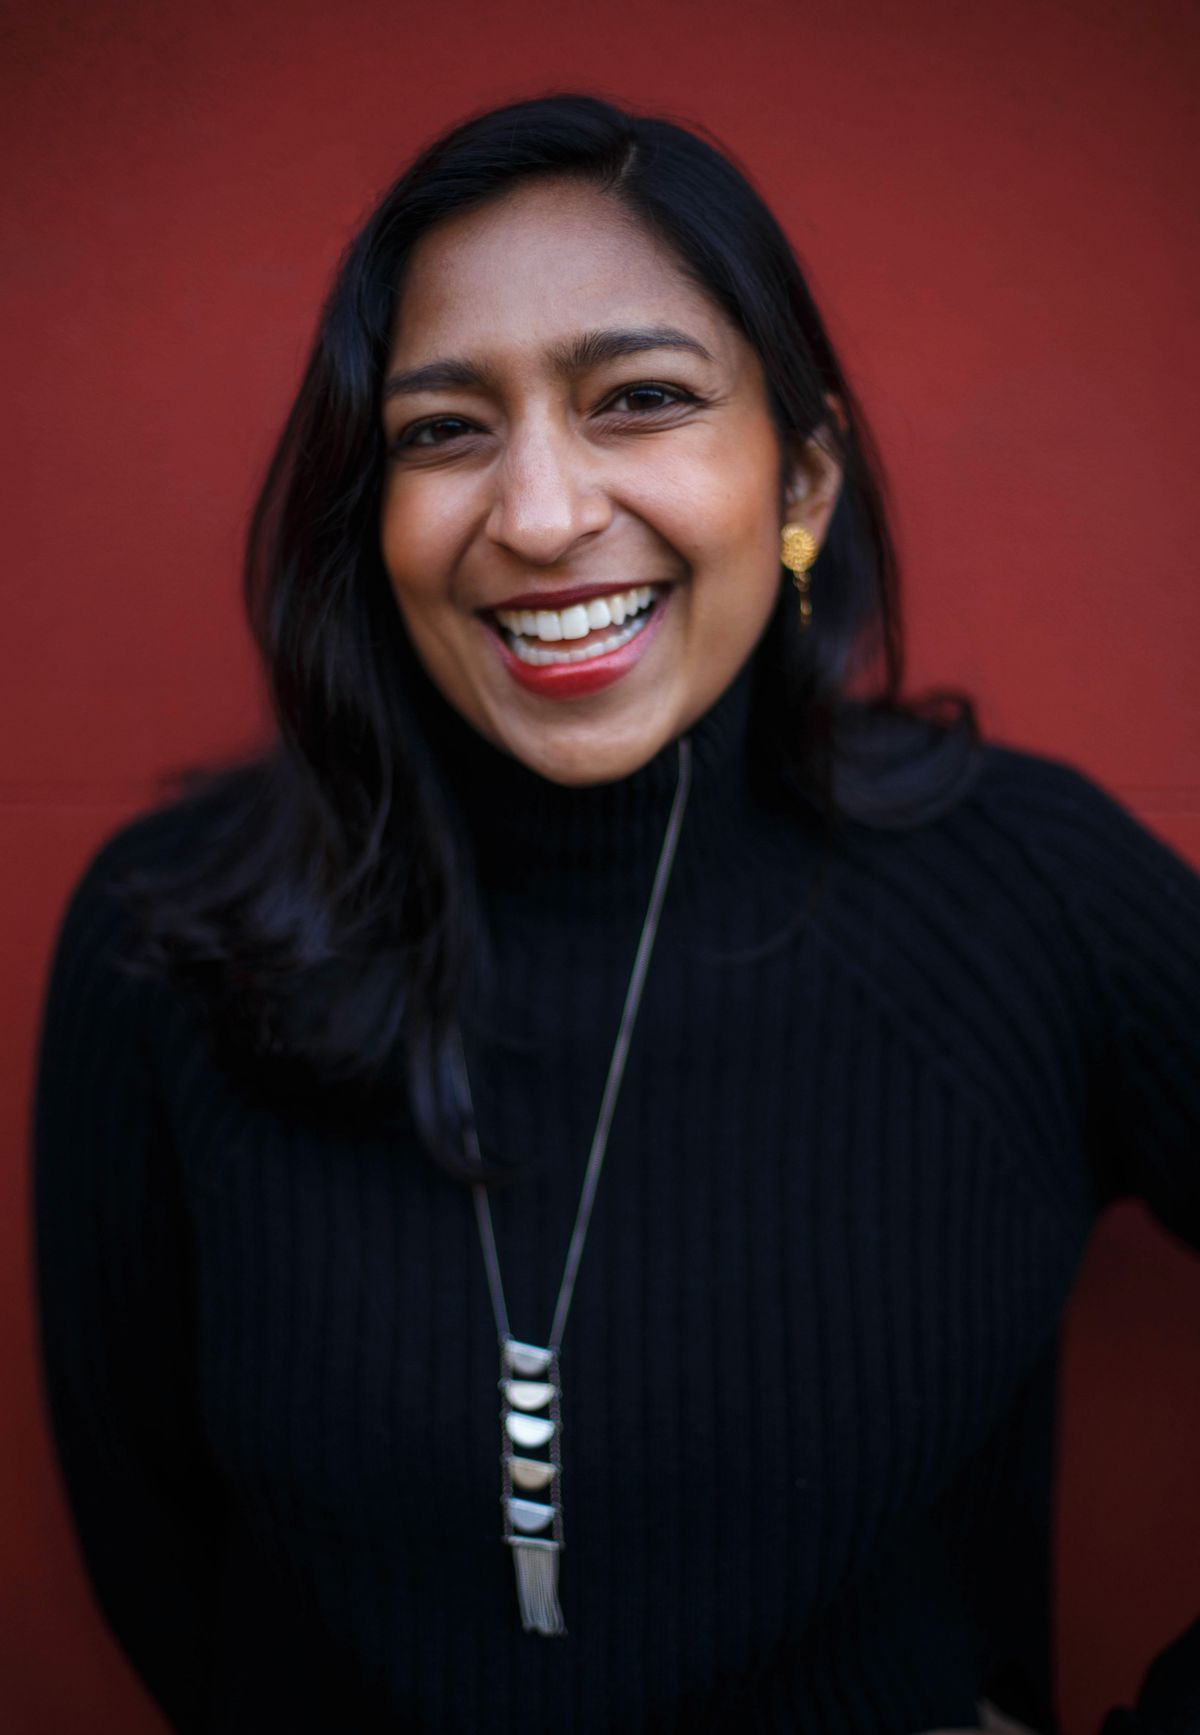 A smiling woman, Priya Krishna, wearing a black turtleneck and standing in front of a red wall.